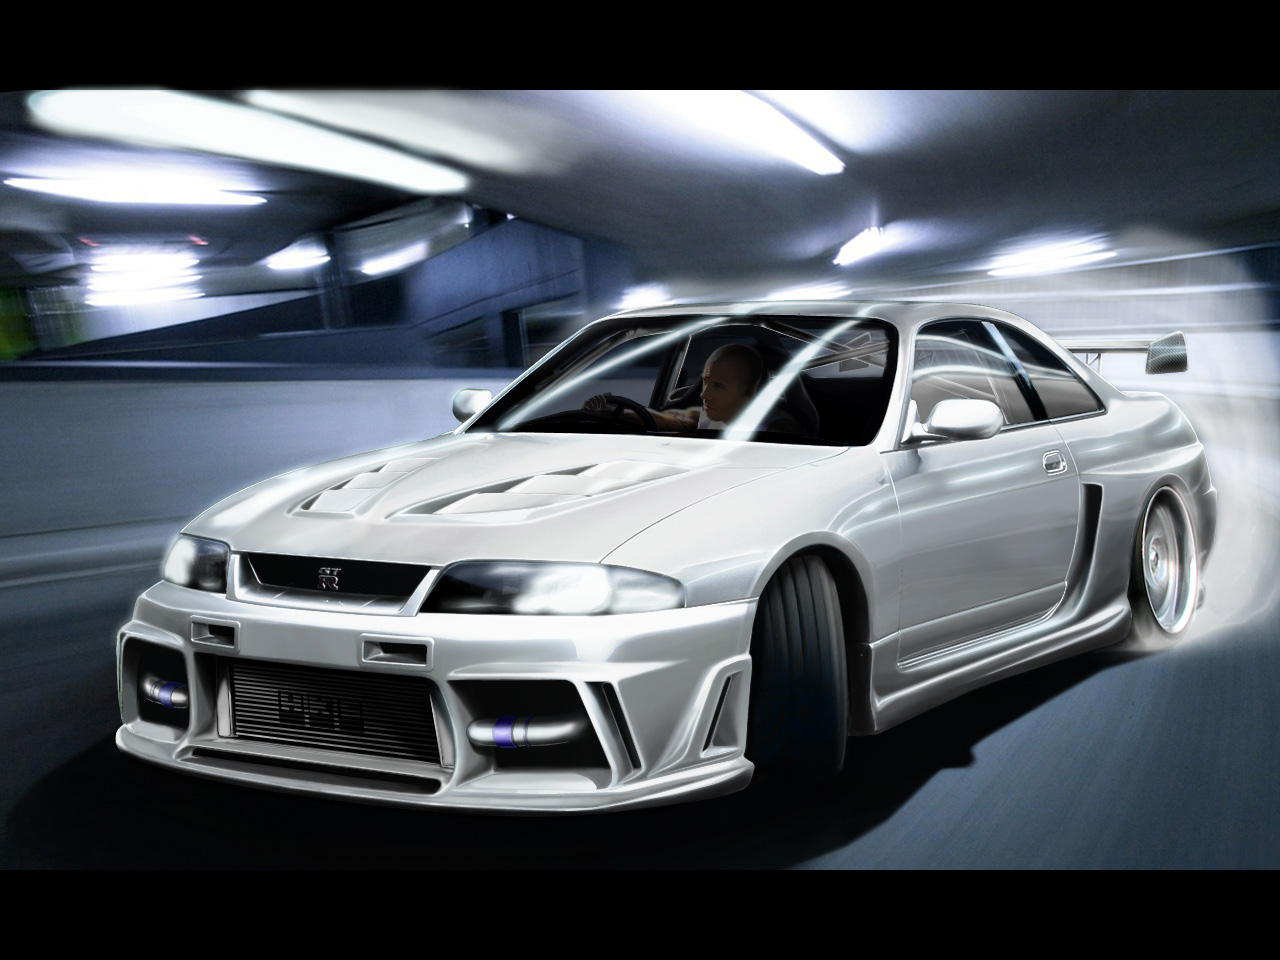 skyline gtr 33 by rookiejeno